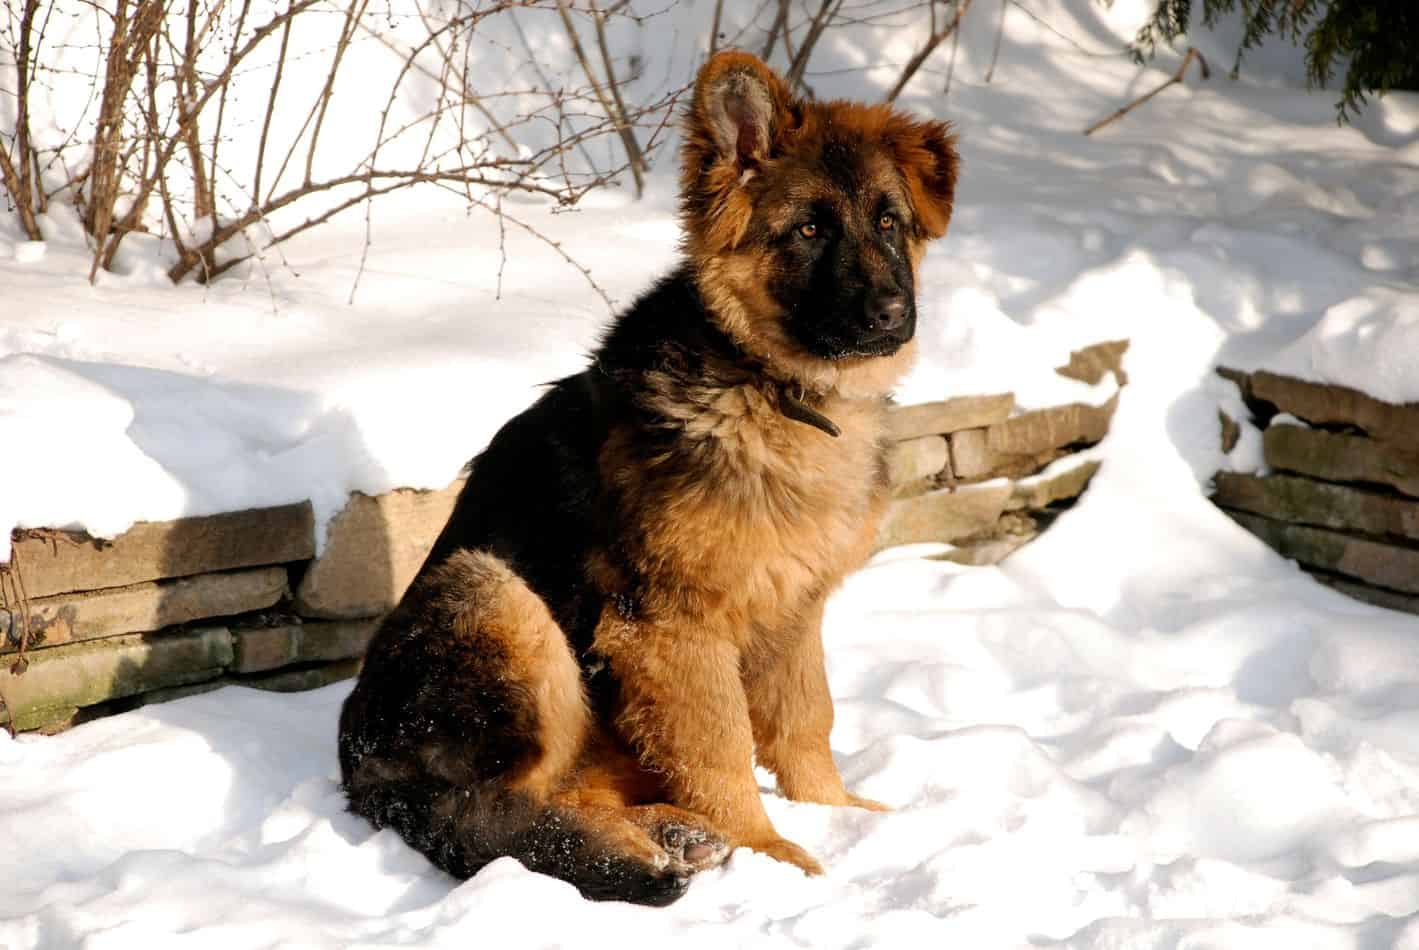 They are an all-weather dog breed